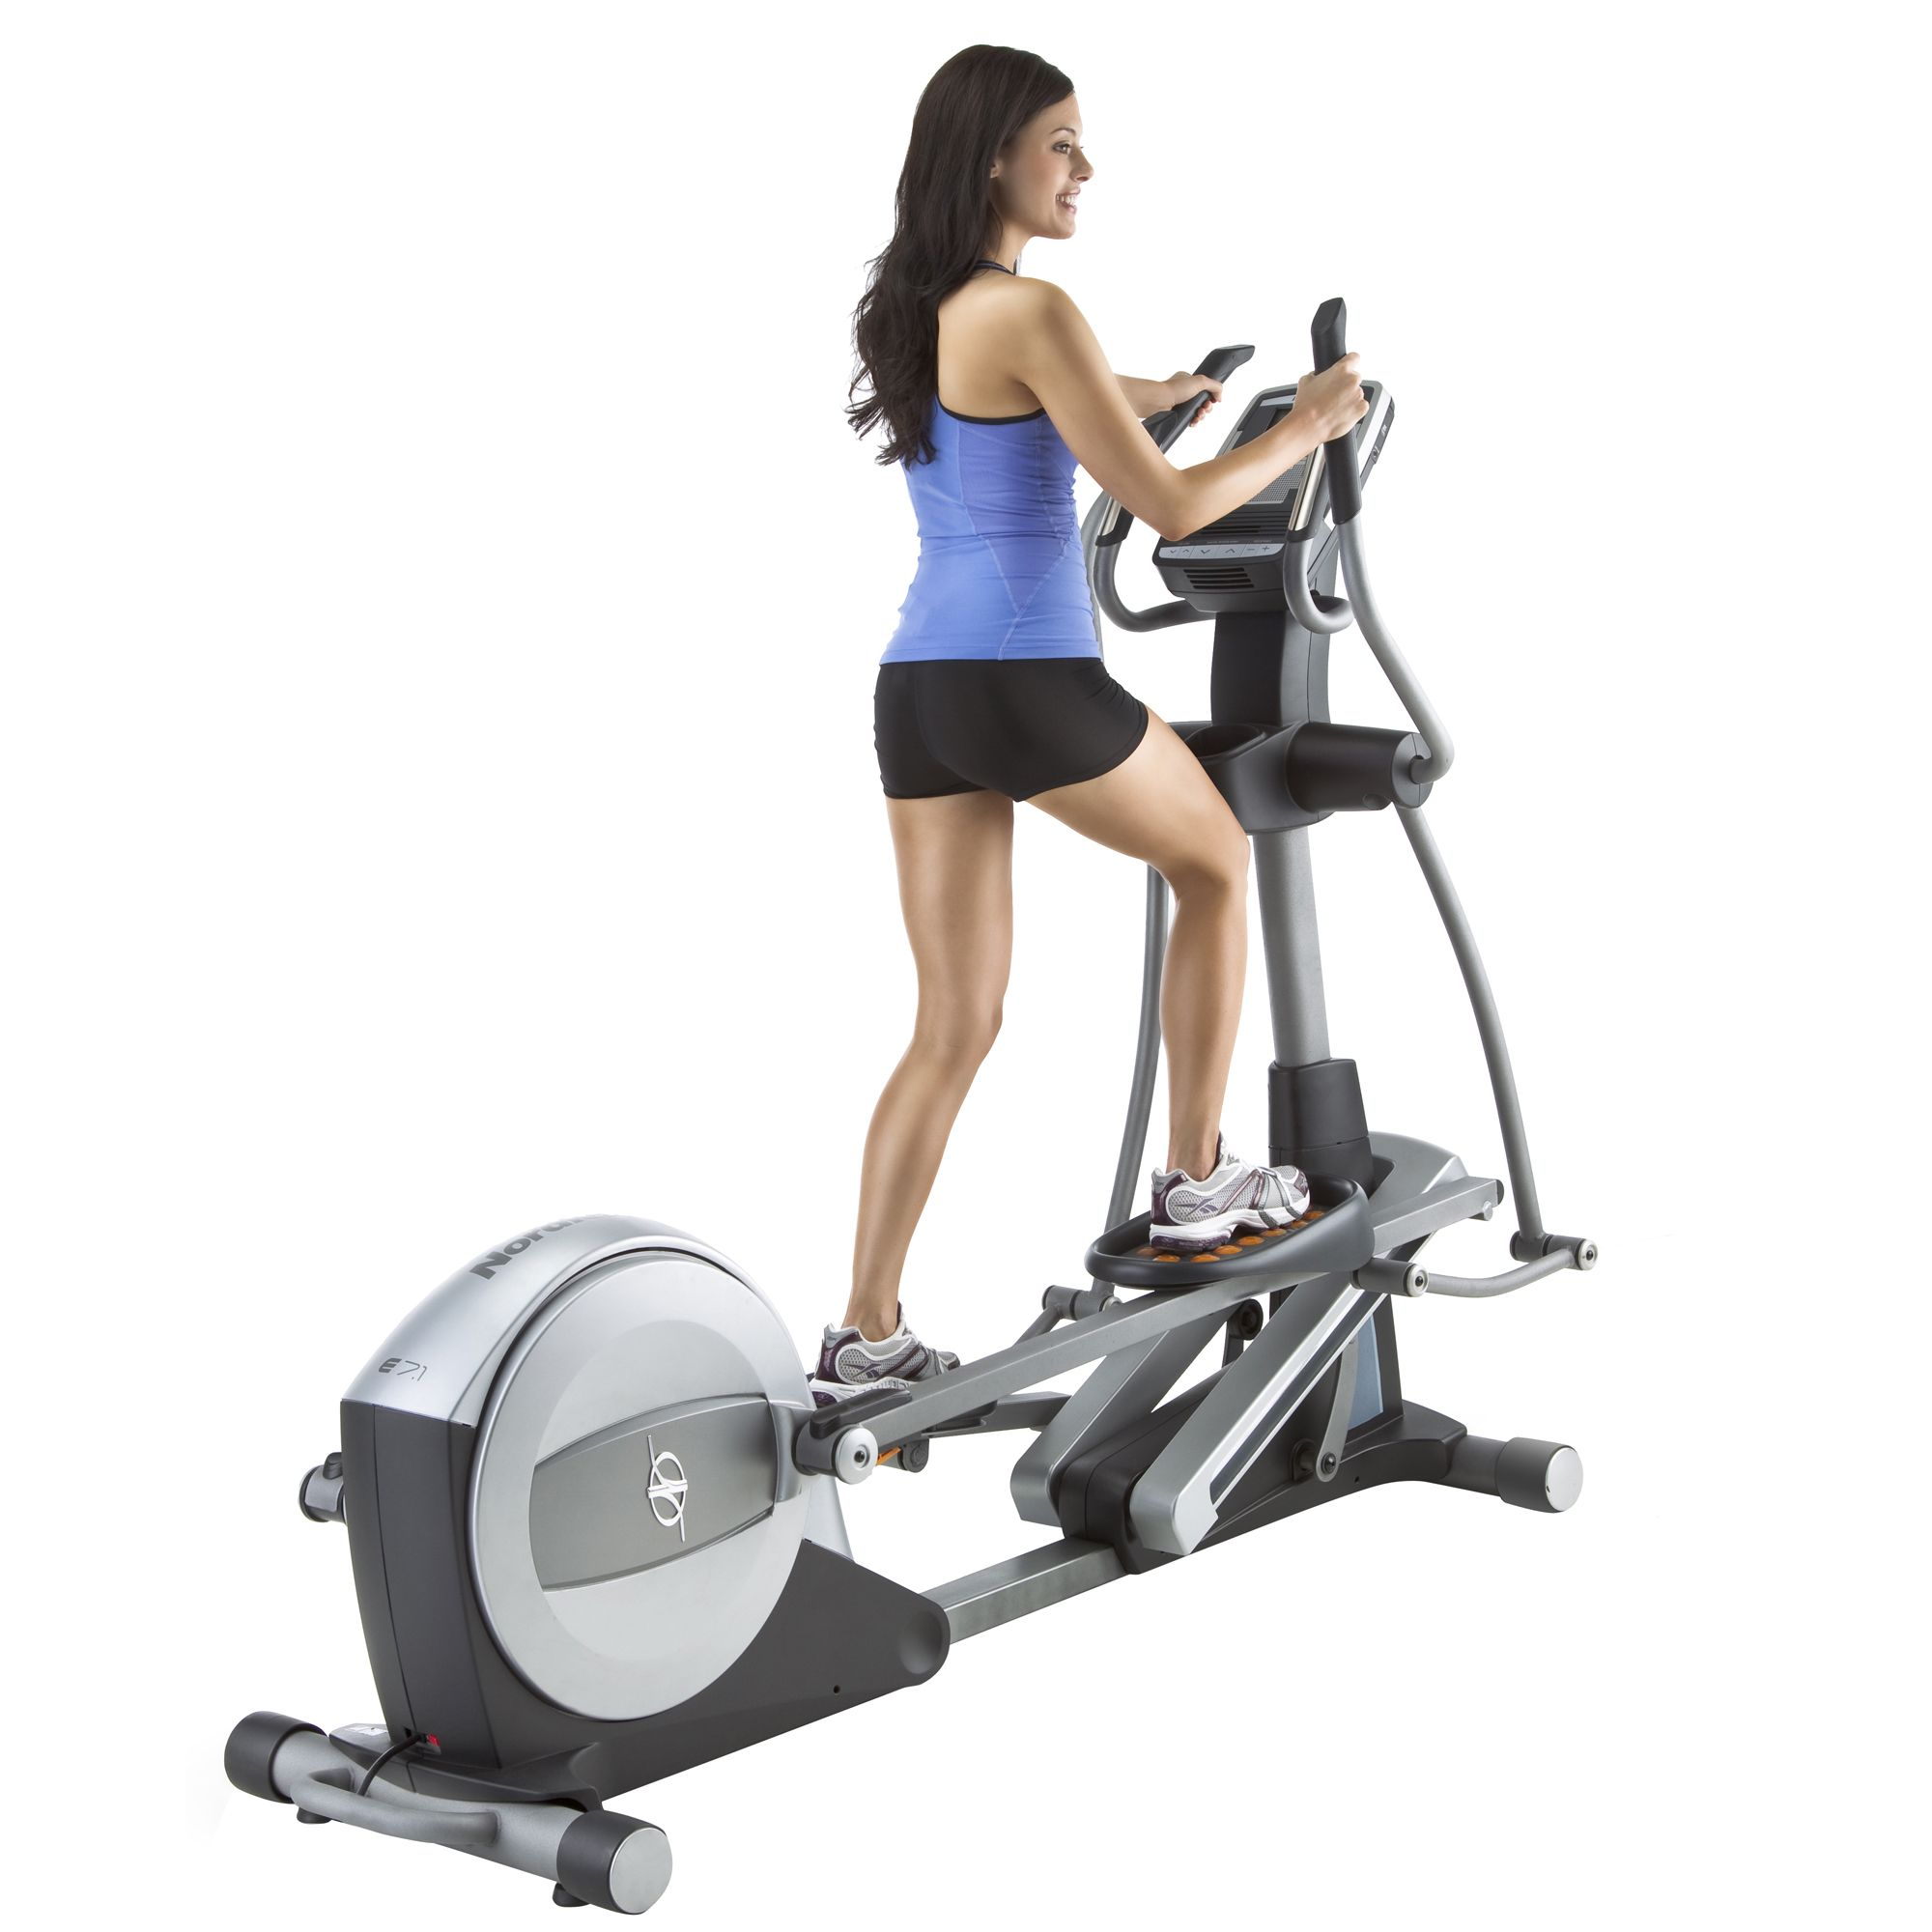 NordicTrack E7.1 Elliptical Trainer